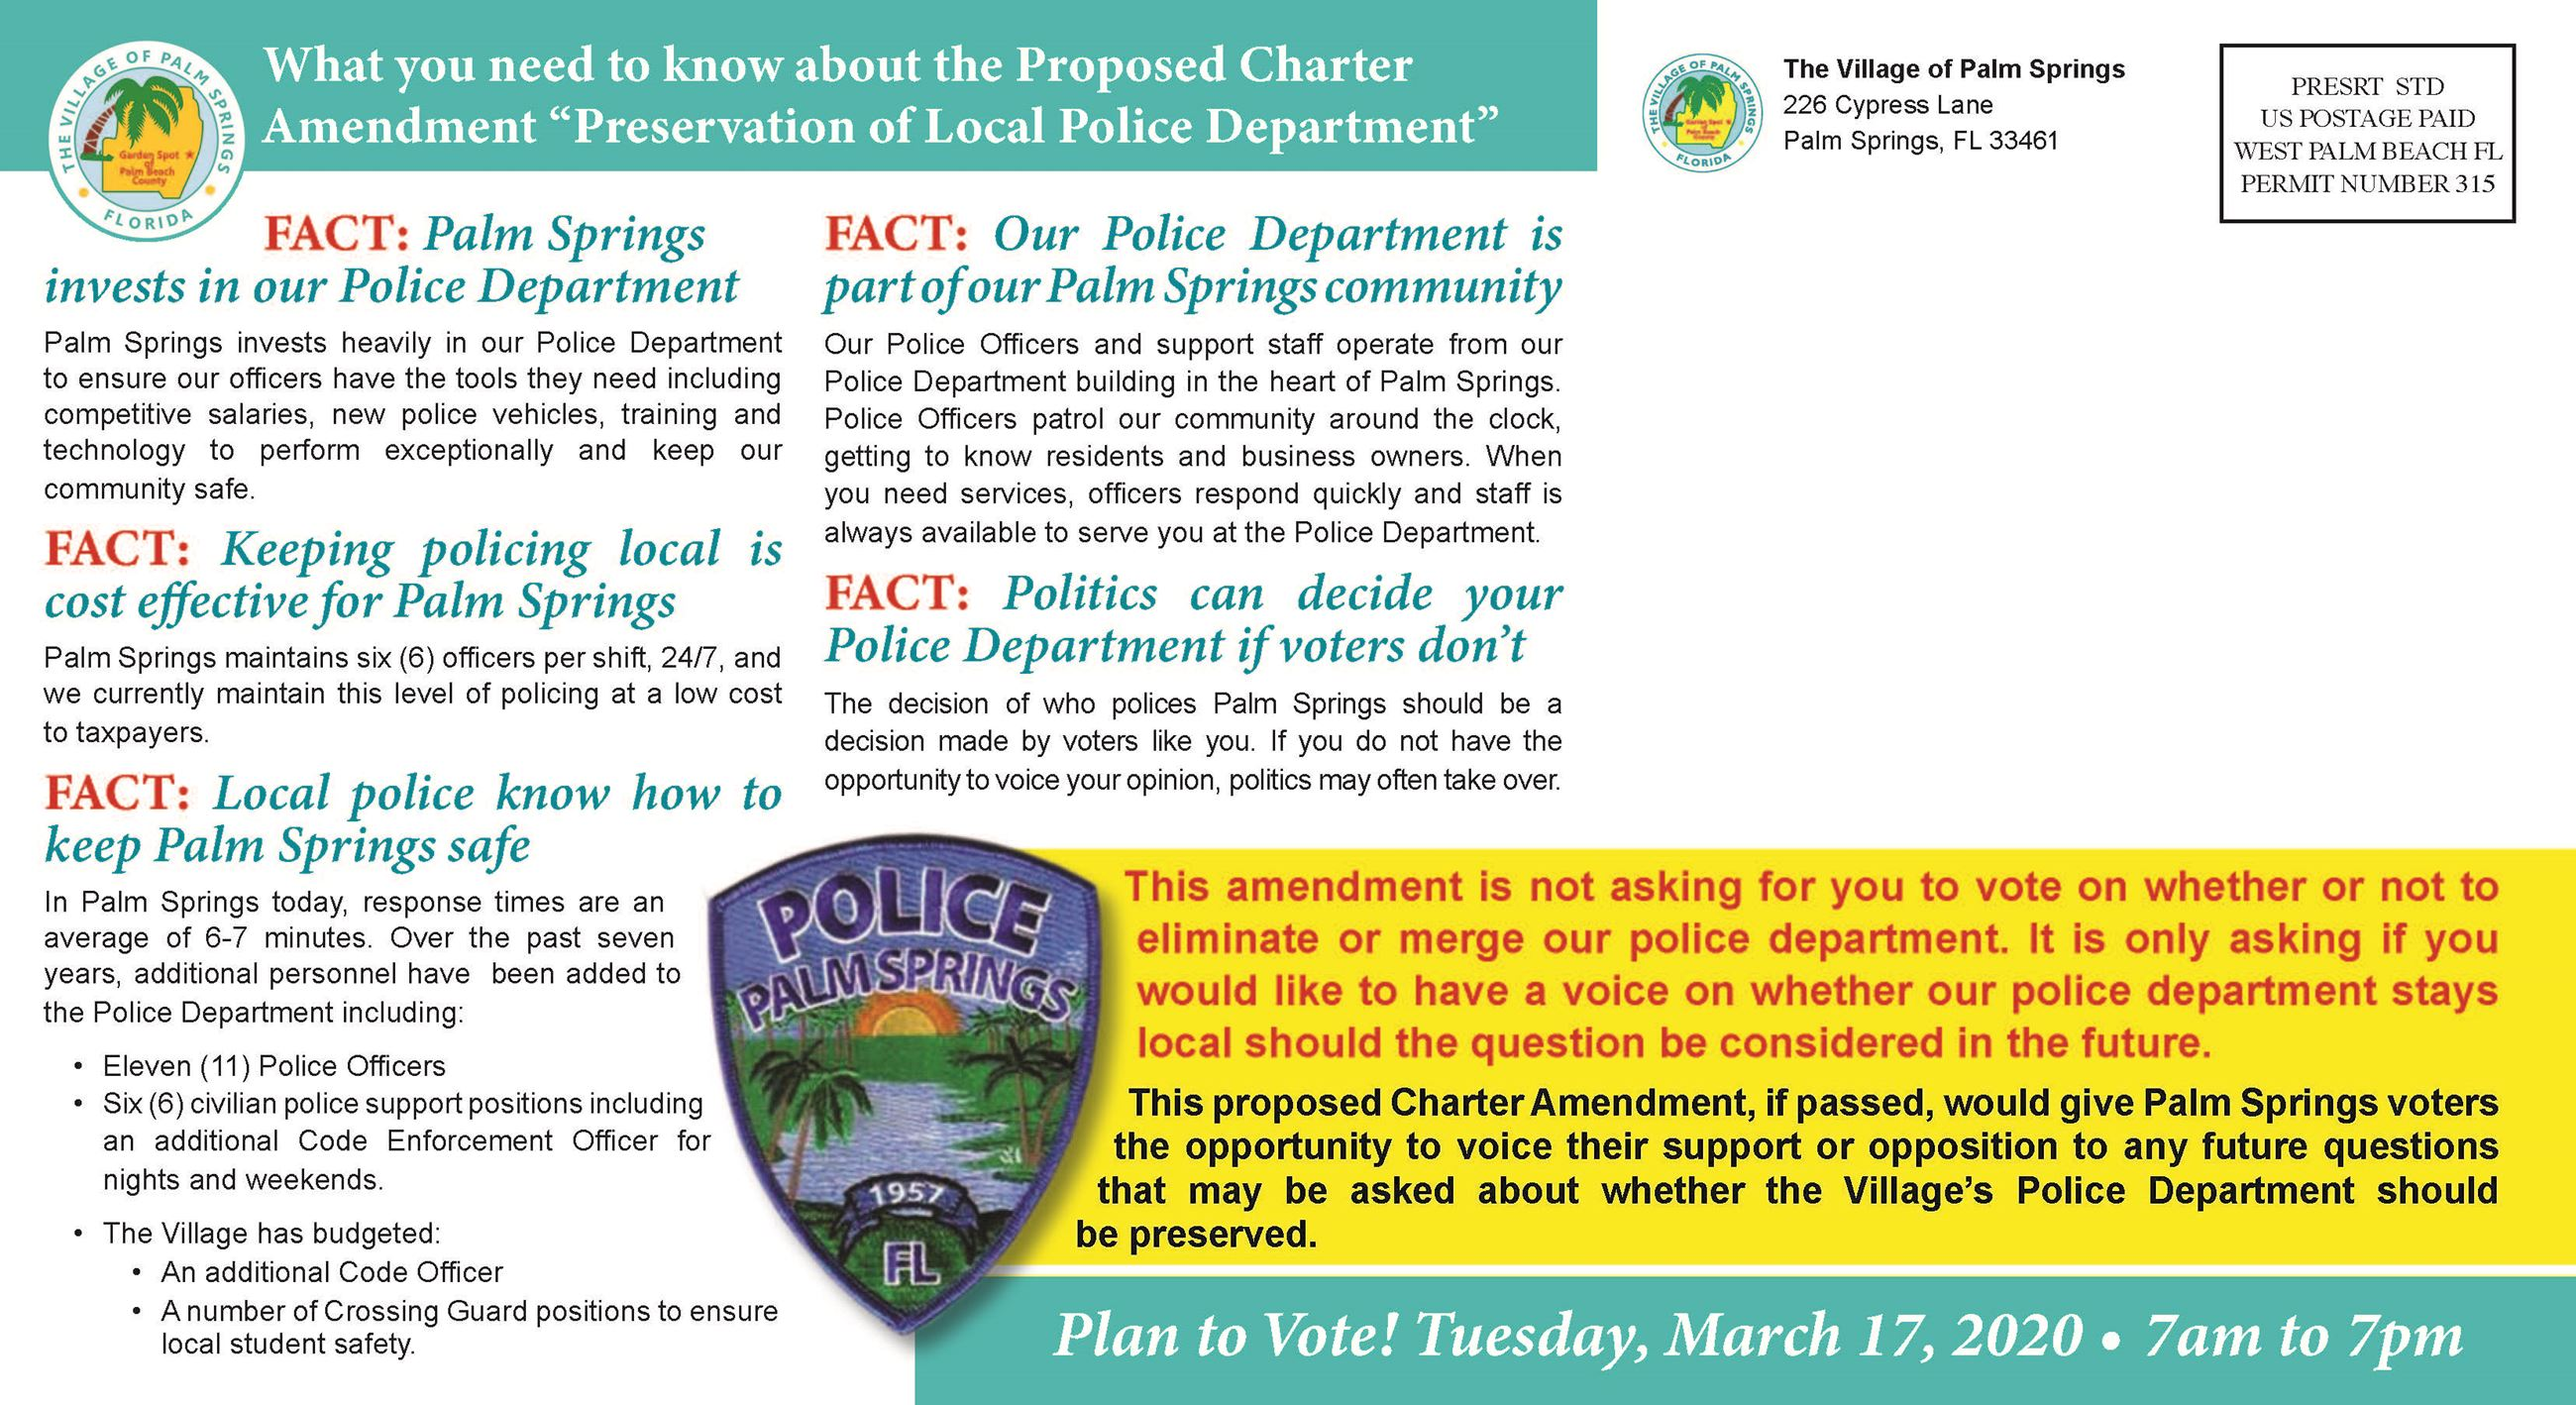 Charter Amendment Fact Post Card (Final) - February 2020_Page_2